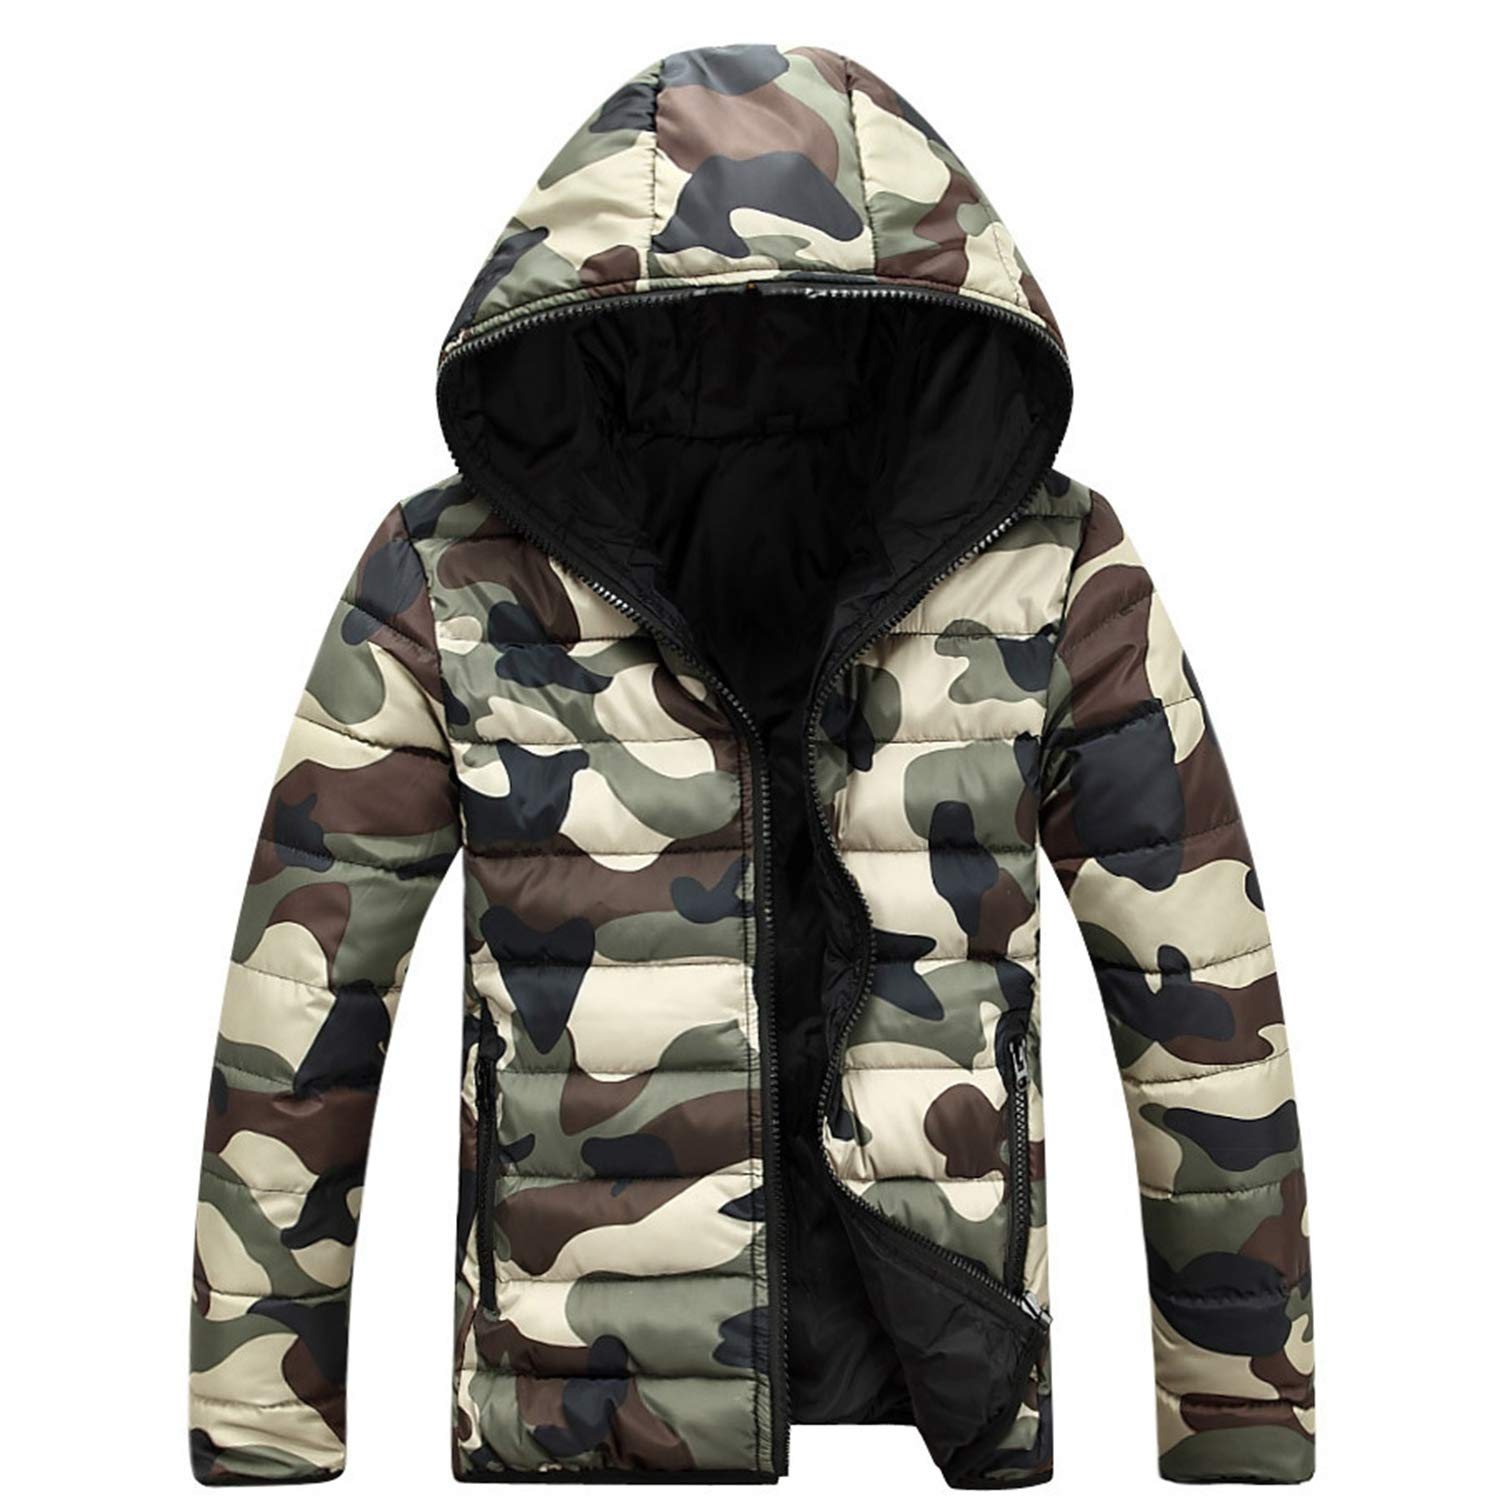 2b021b724811 Frozac Camouflage Winter Down Jacket Coats Men New Mens Doudoune Homme  Hiver Marque with Hood at Amazon Men s Clothing store